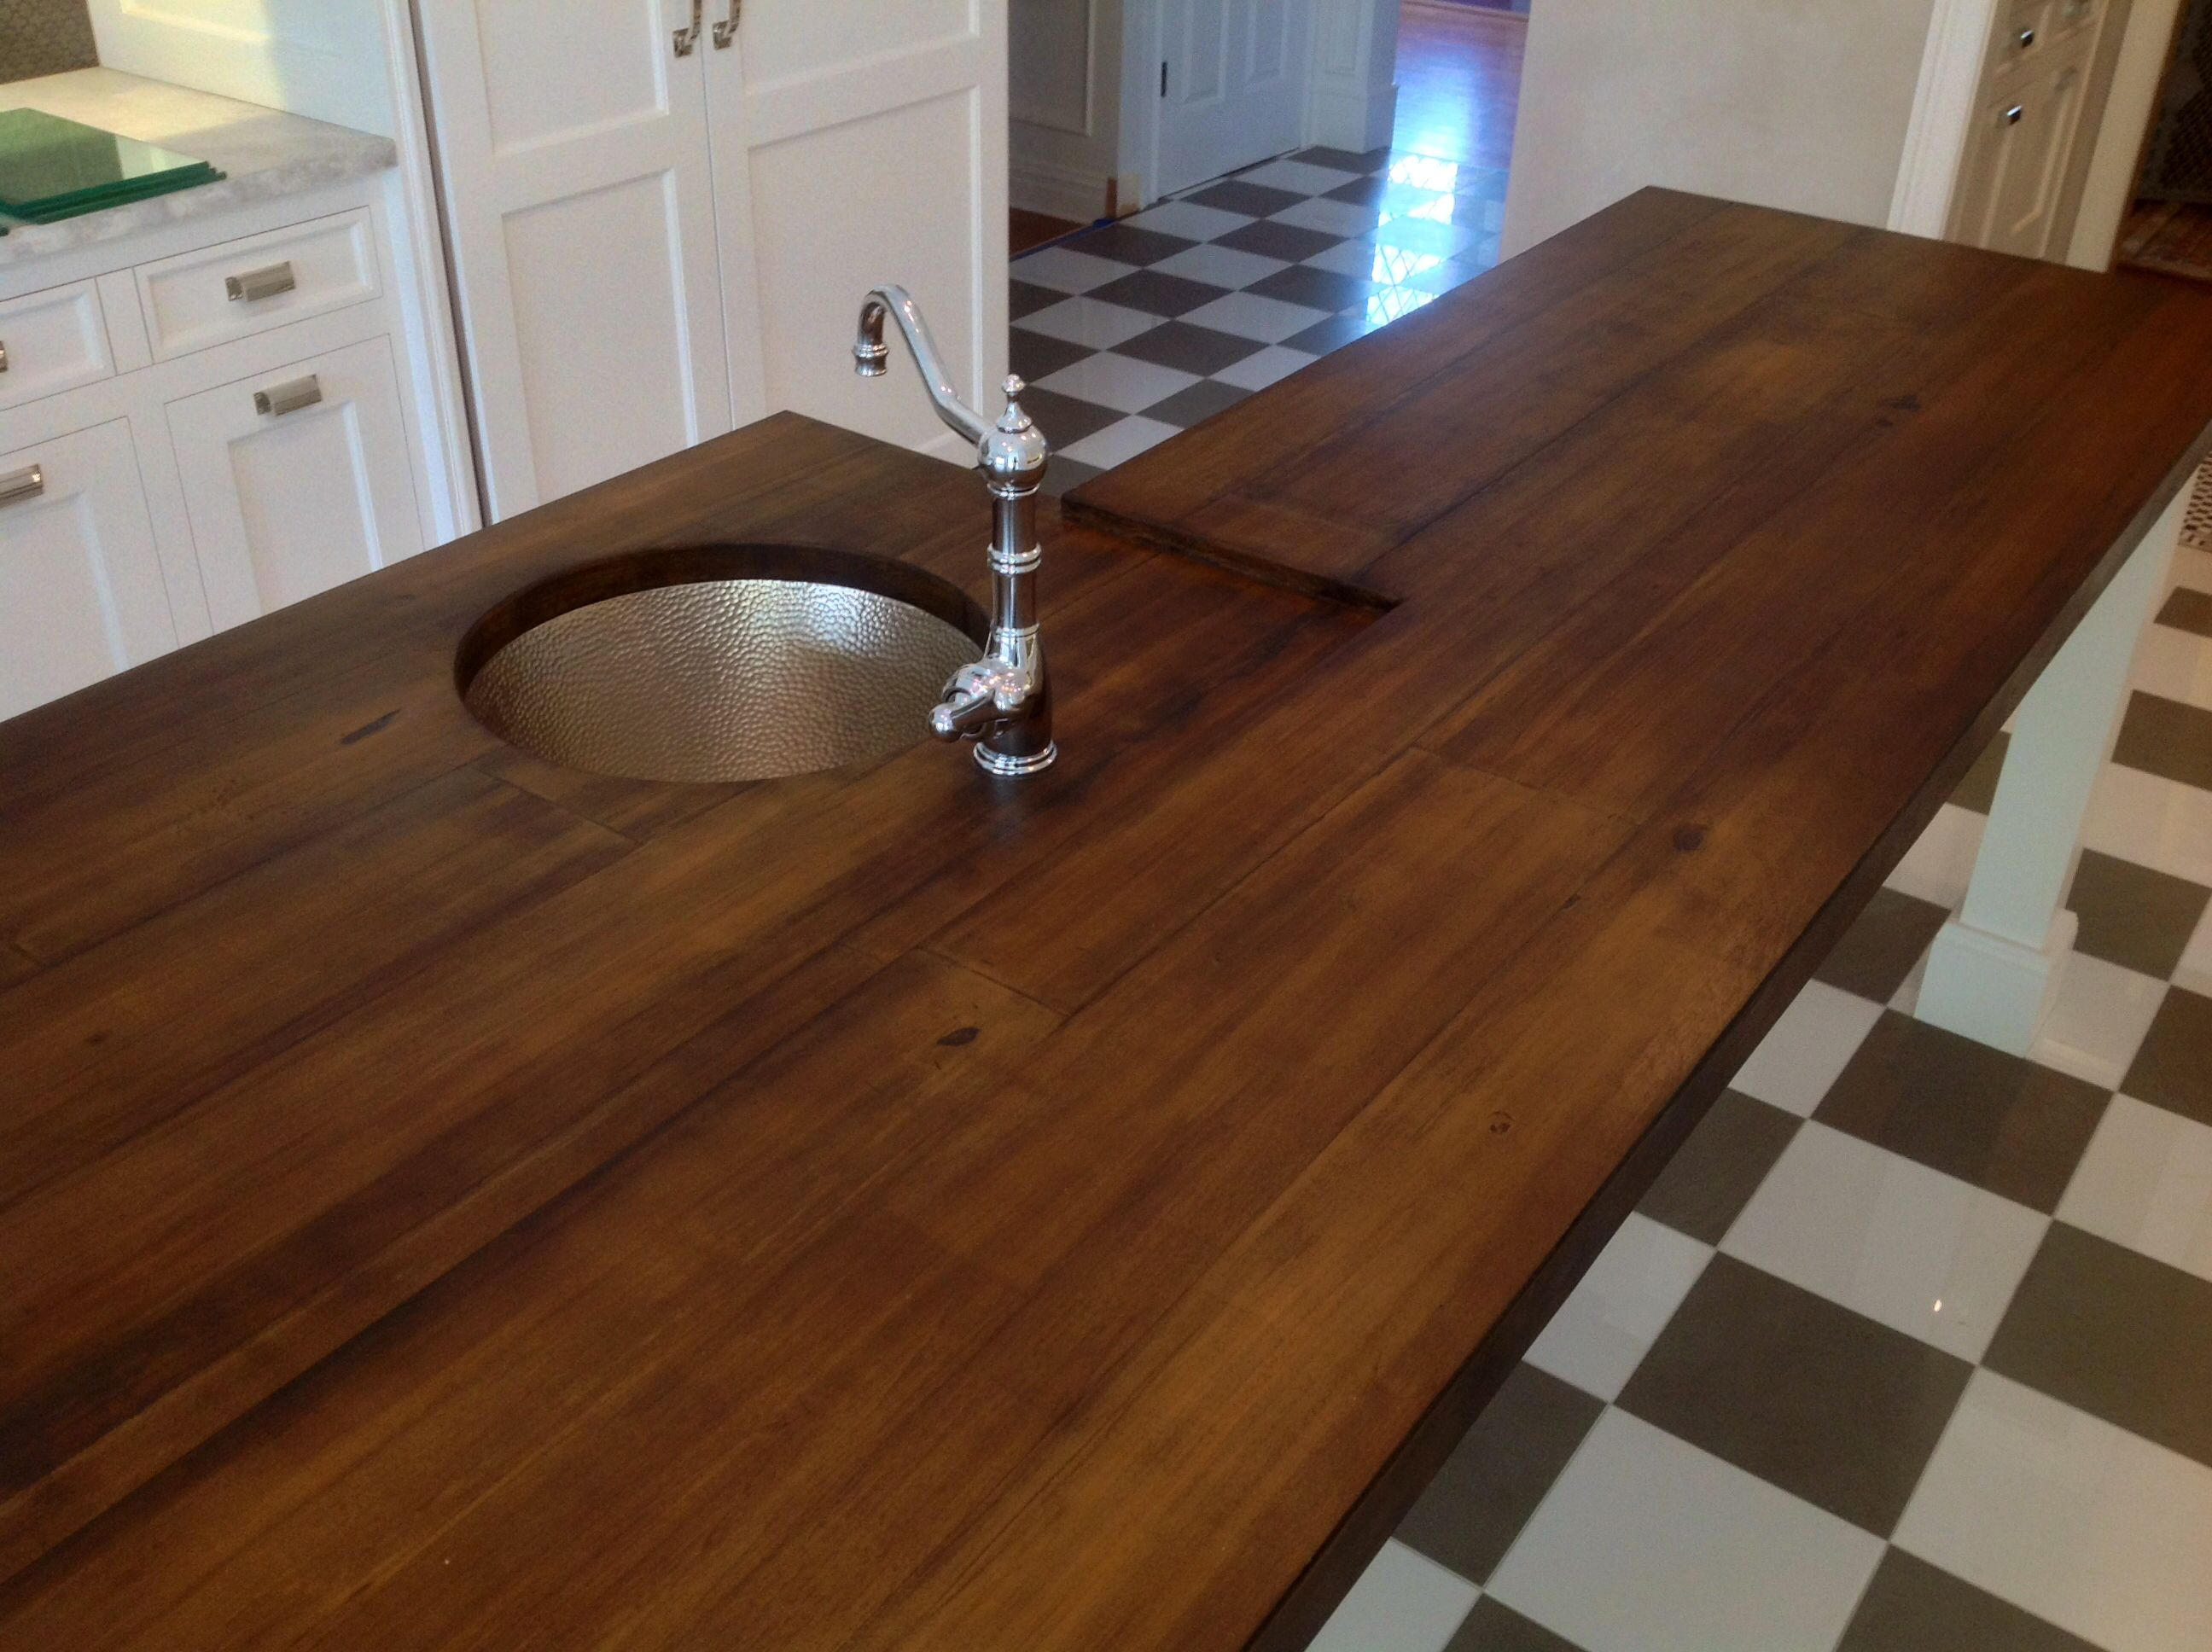 Another View Of The Concrete Countertop My Husband Made To Look Like Wood